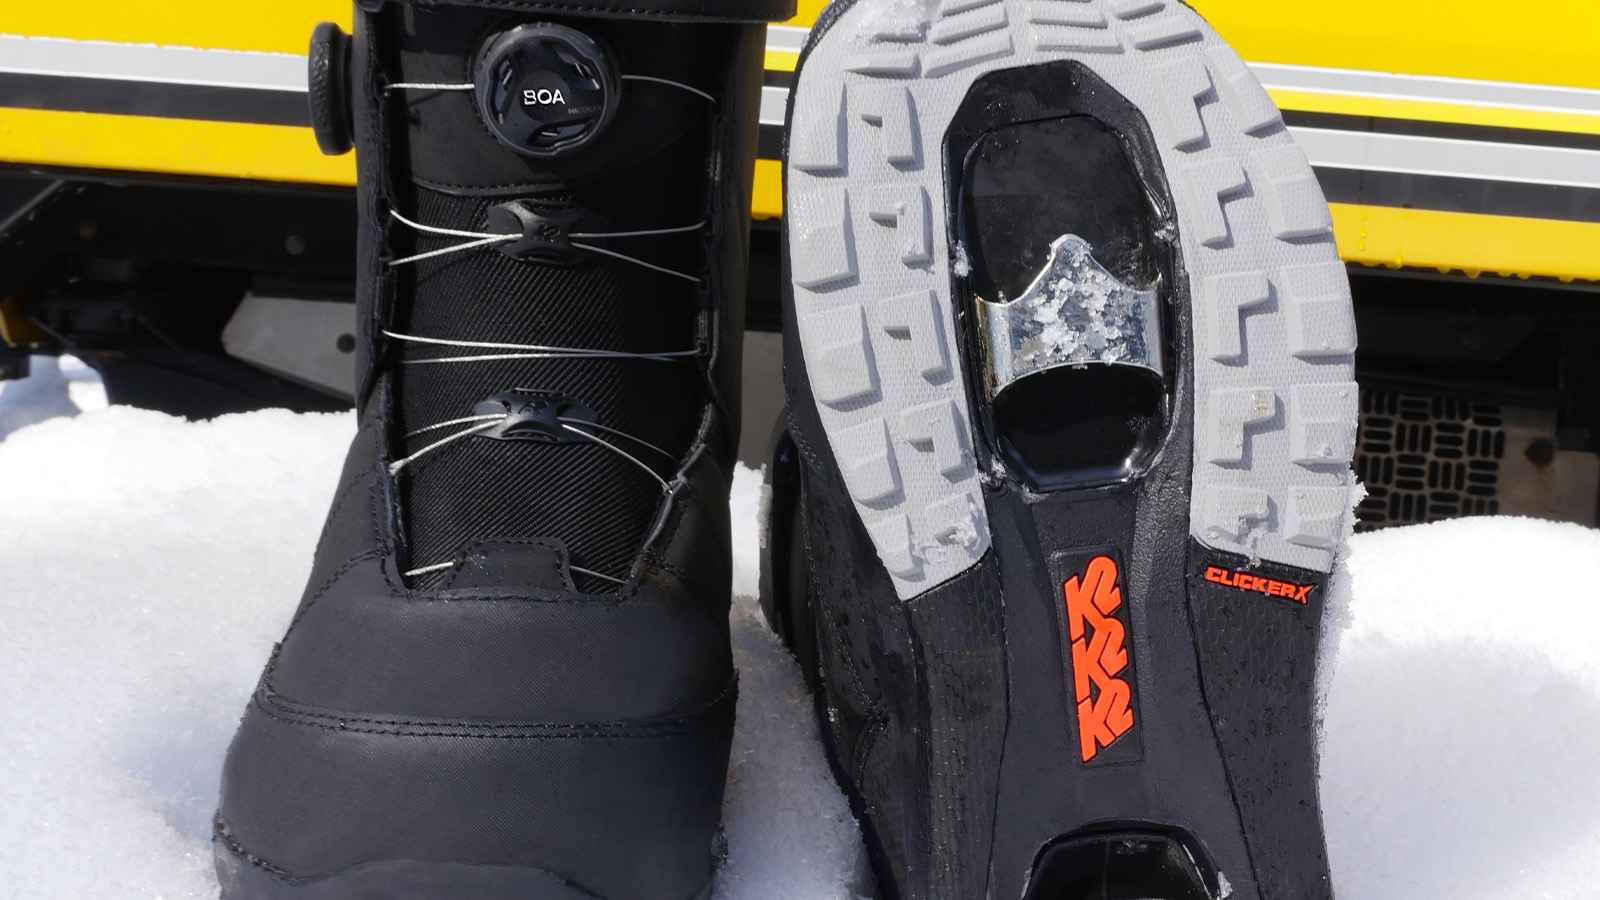 K2 FW20/21 Snowboard Boots